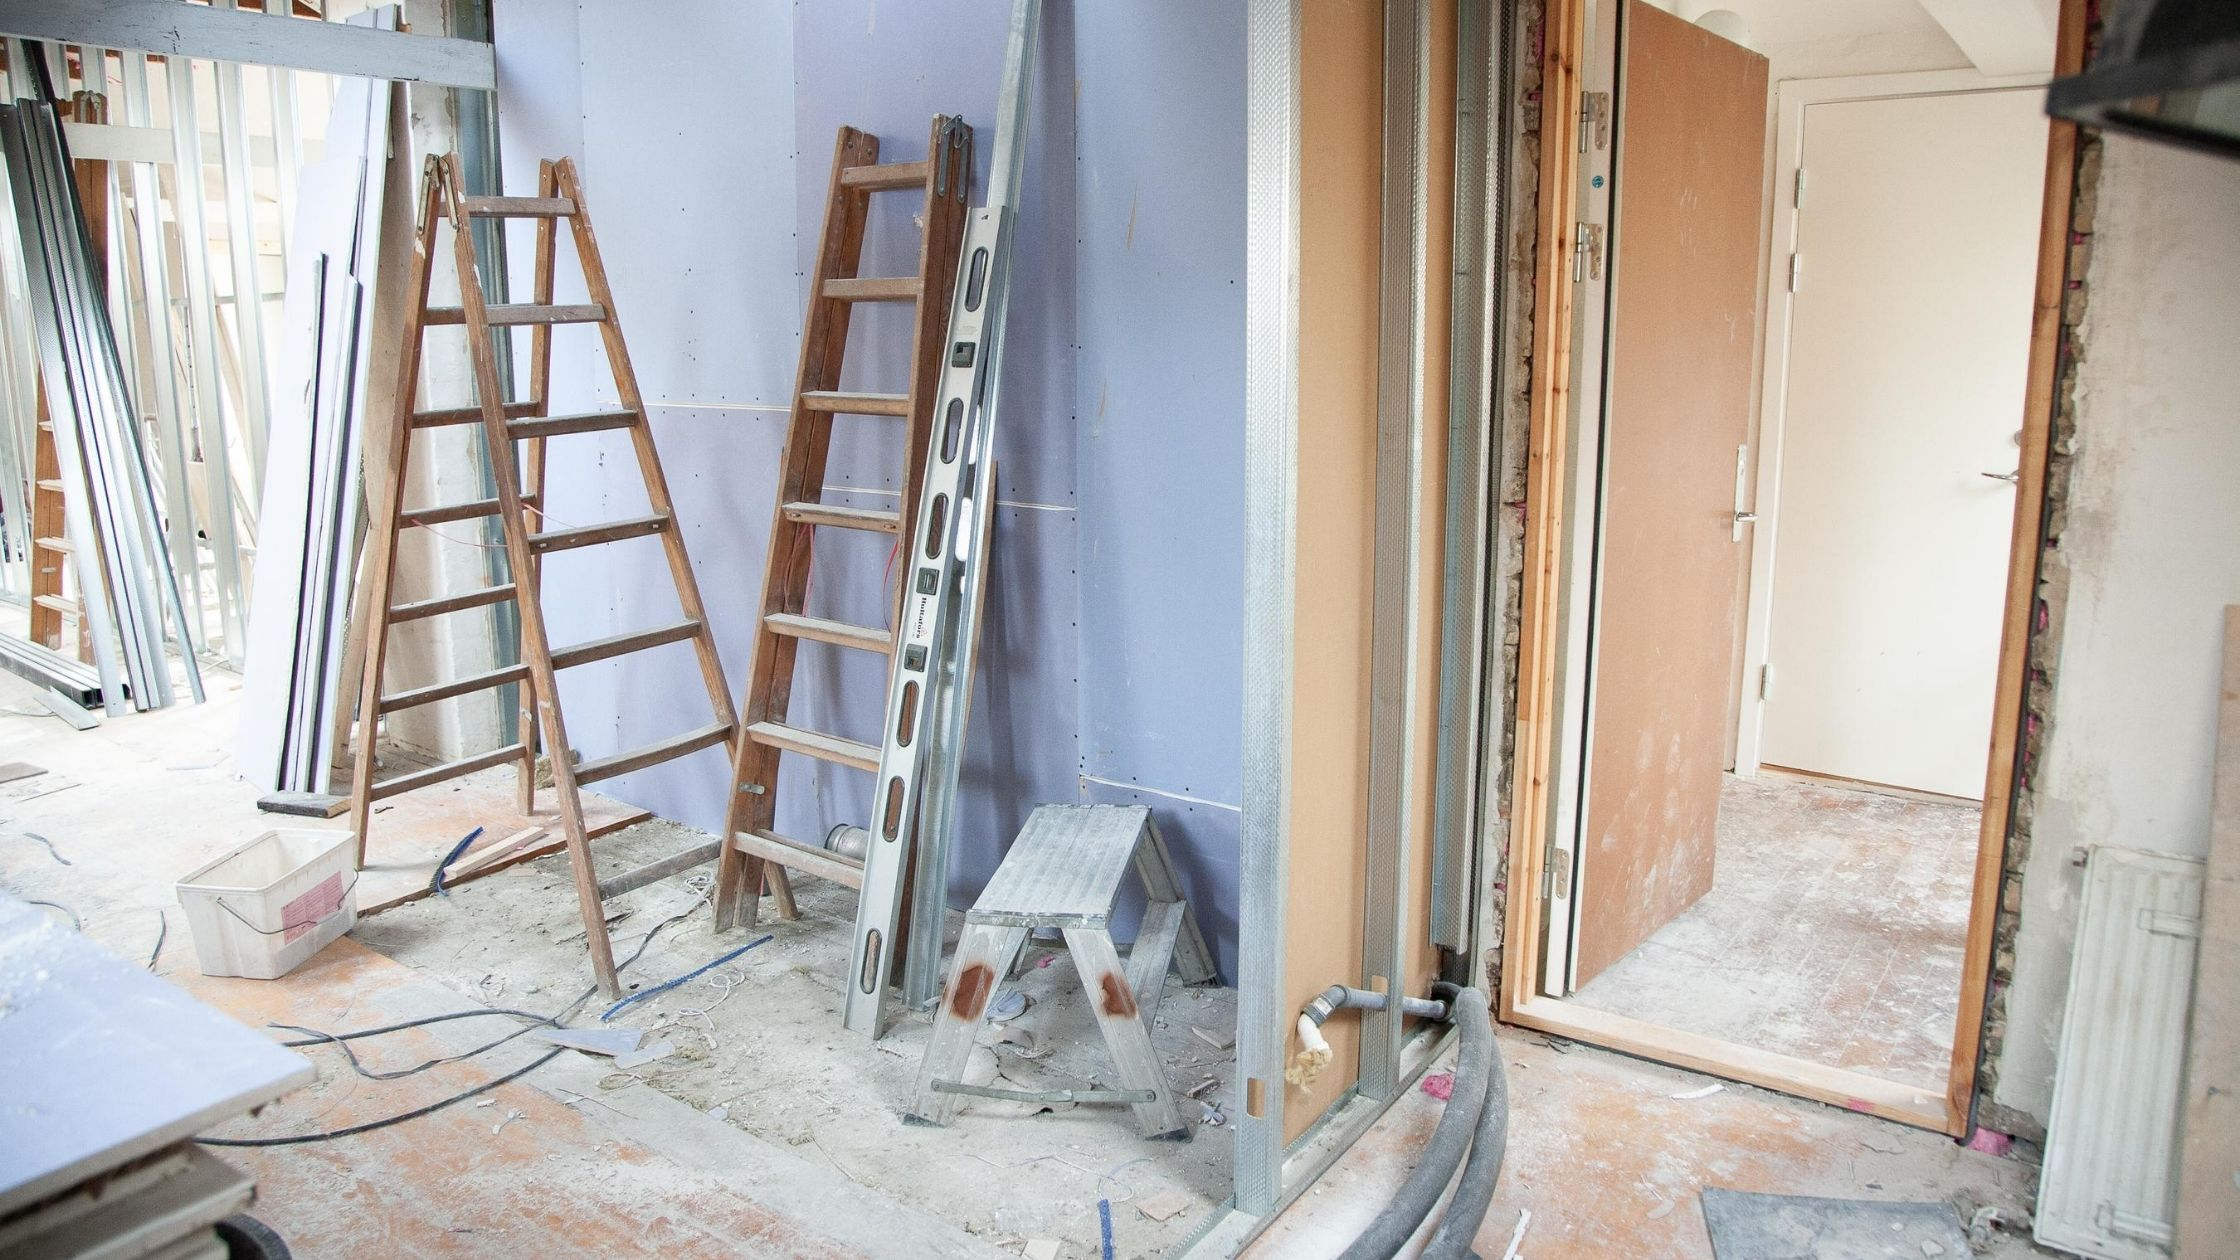 What Do You Need to Know Before You Renovate Your House